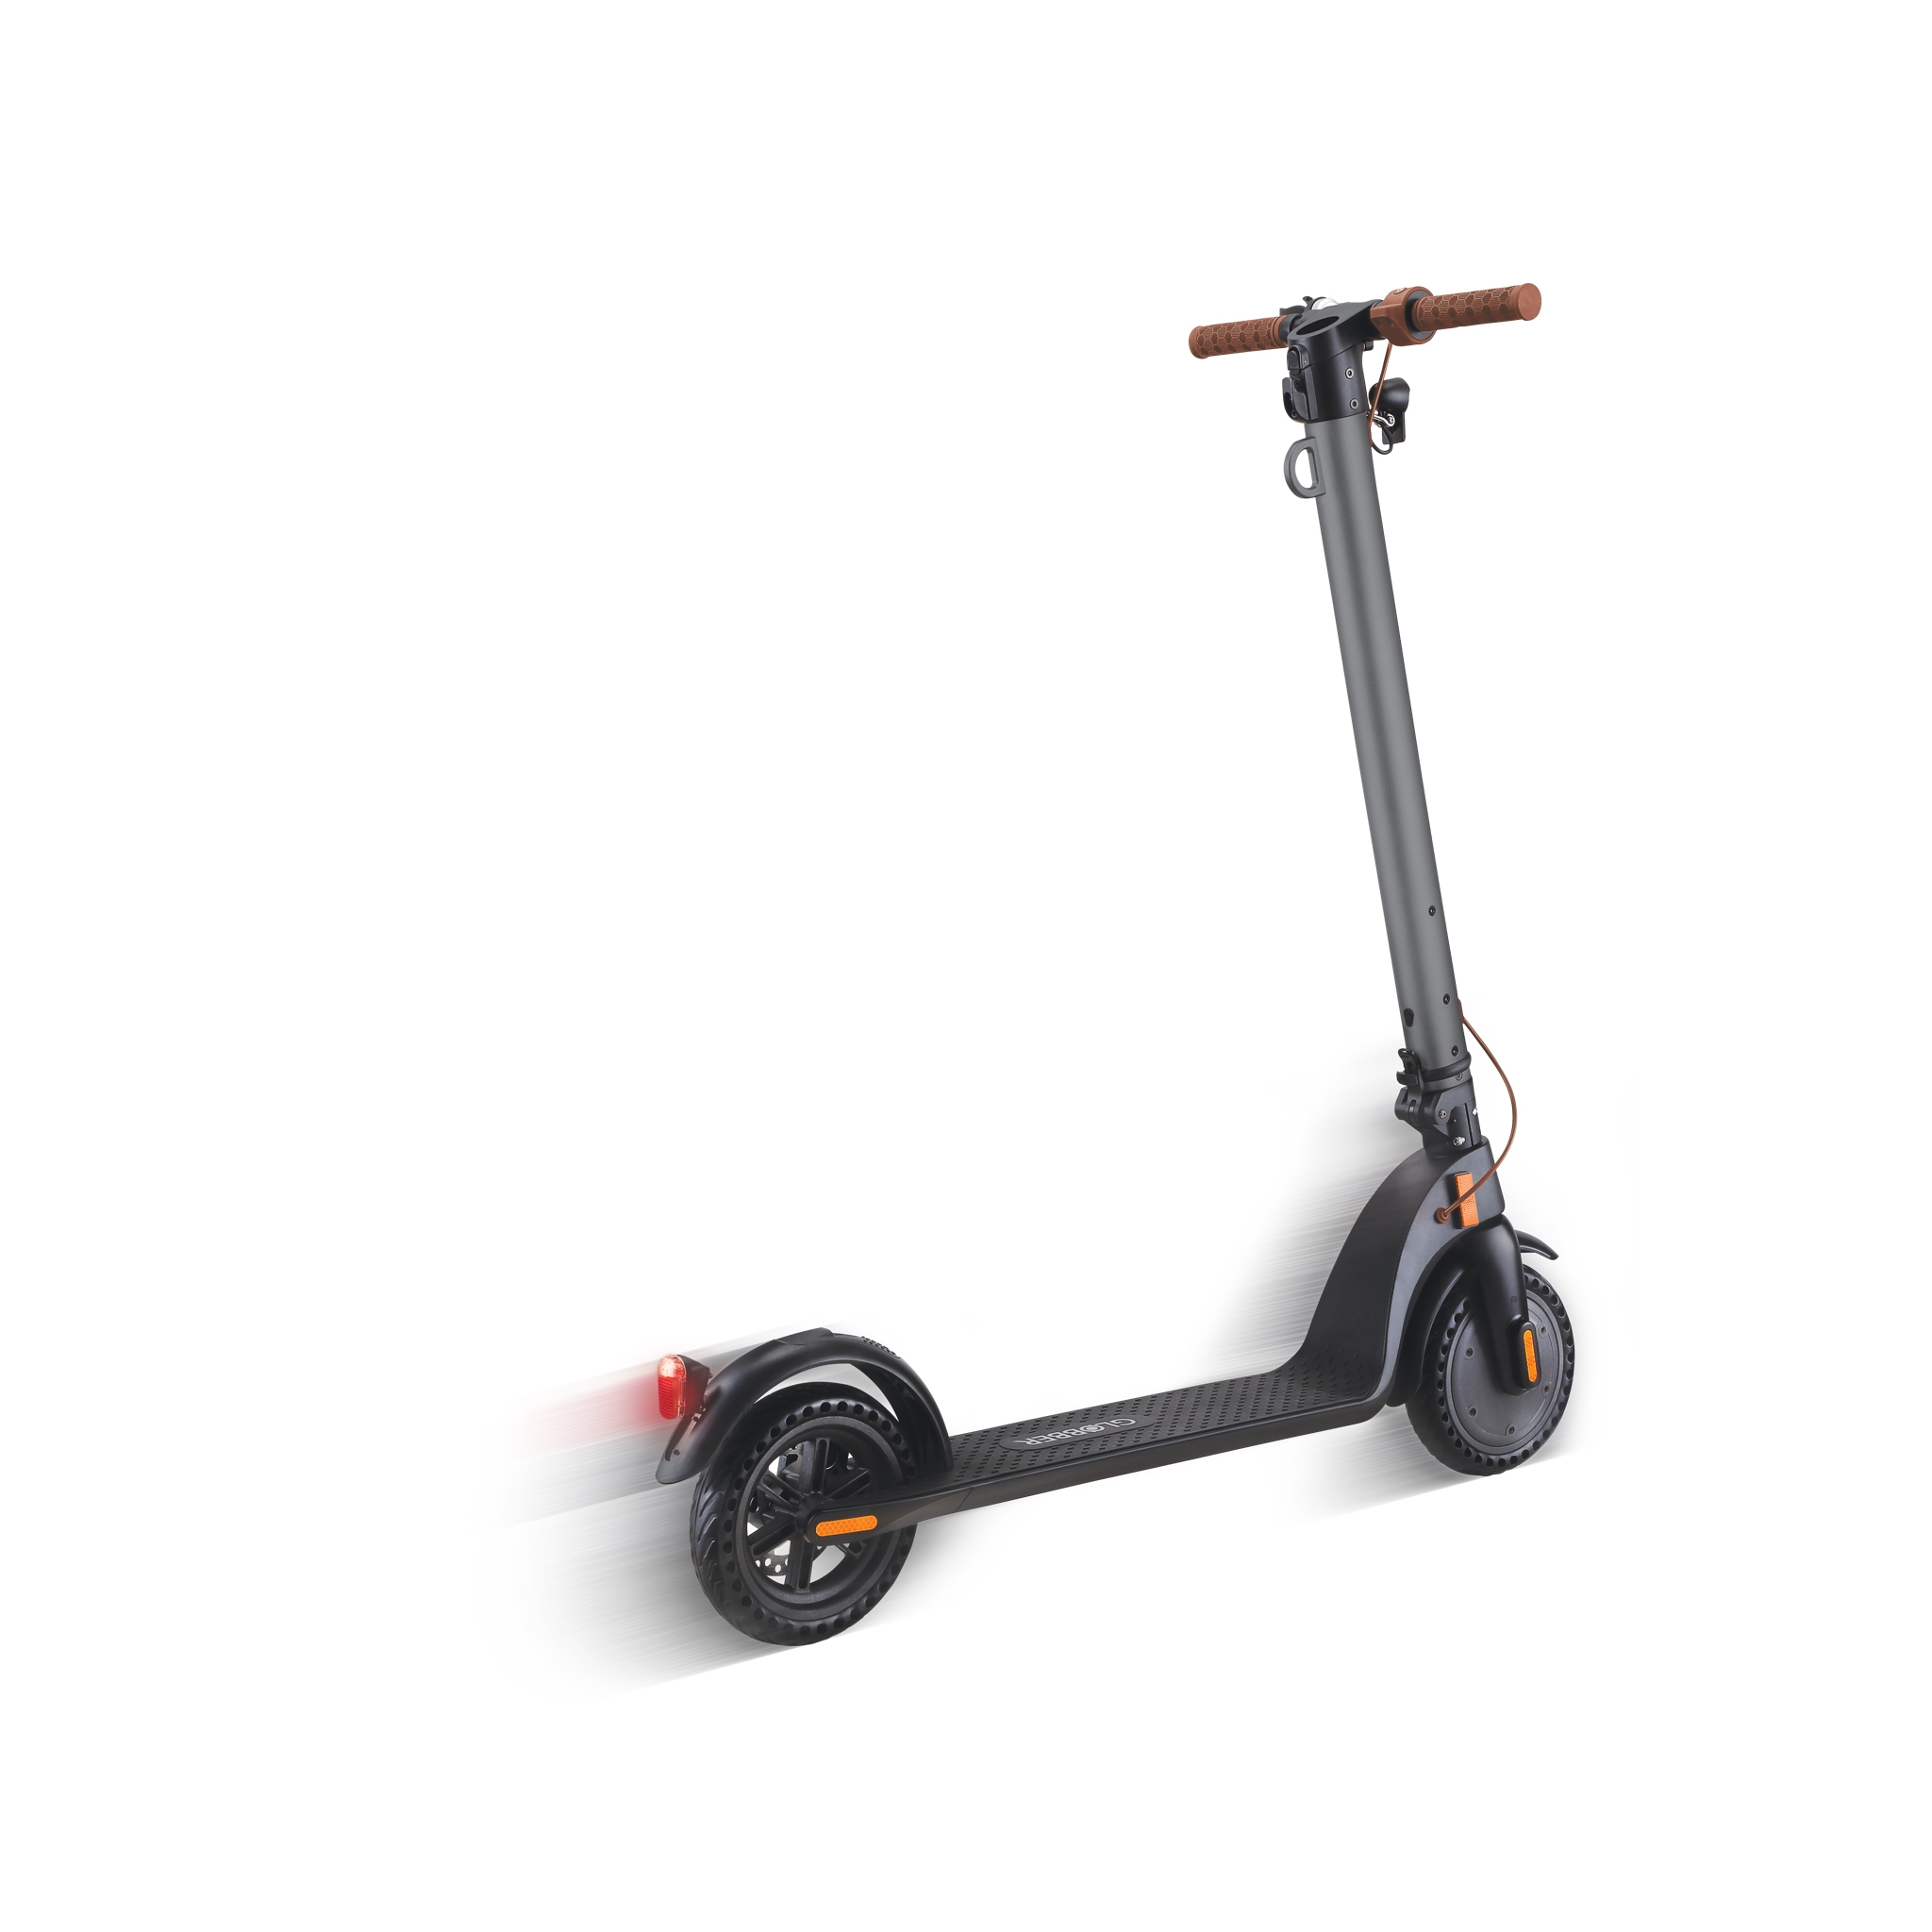 Globber-ONE-K-E-MOTION-23-electric-scooter-for-teens-and-adults-with-350w-brushless-hub-motor 3